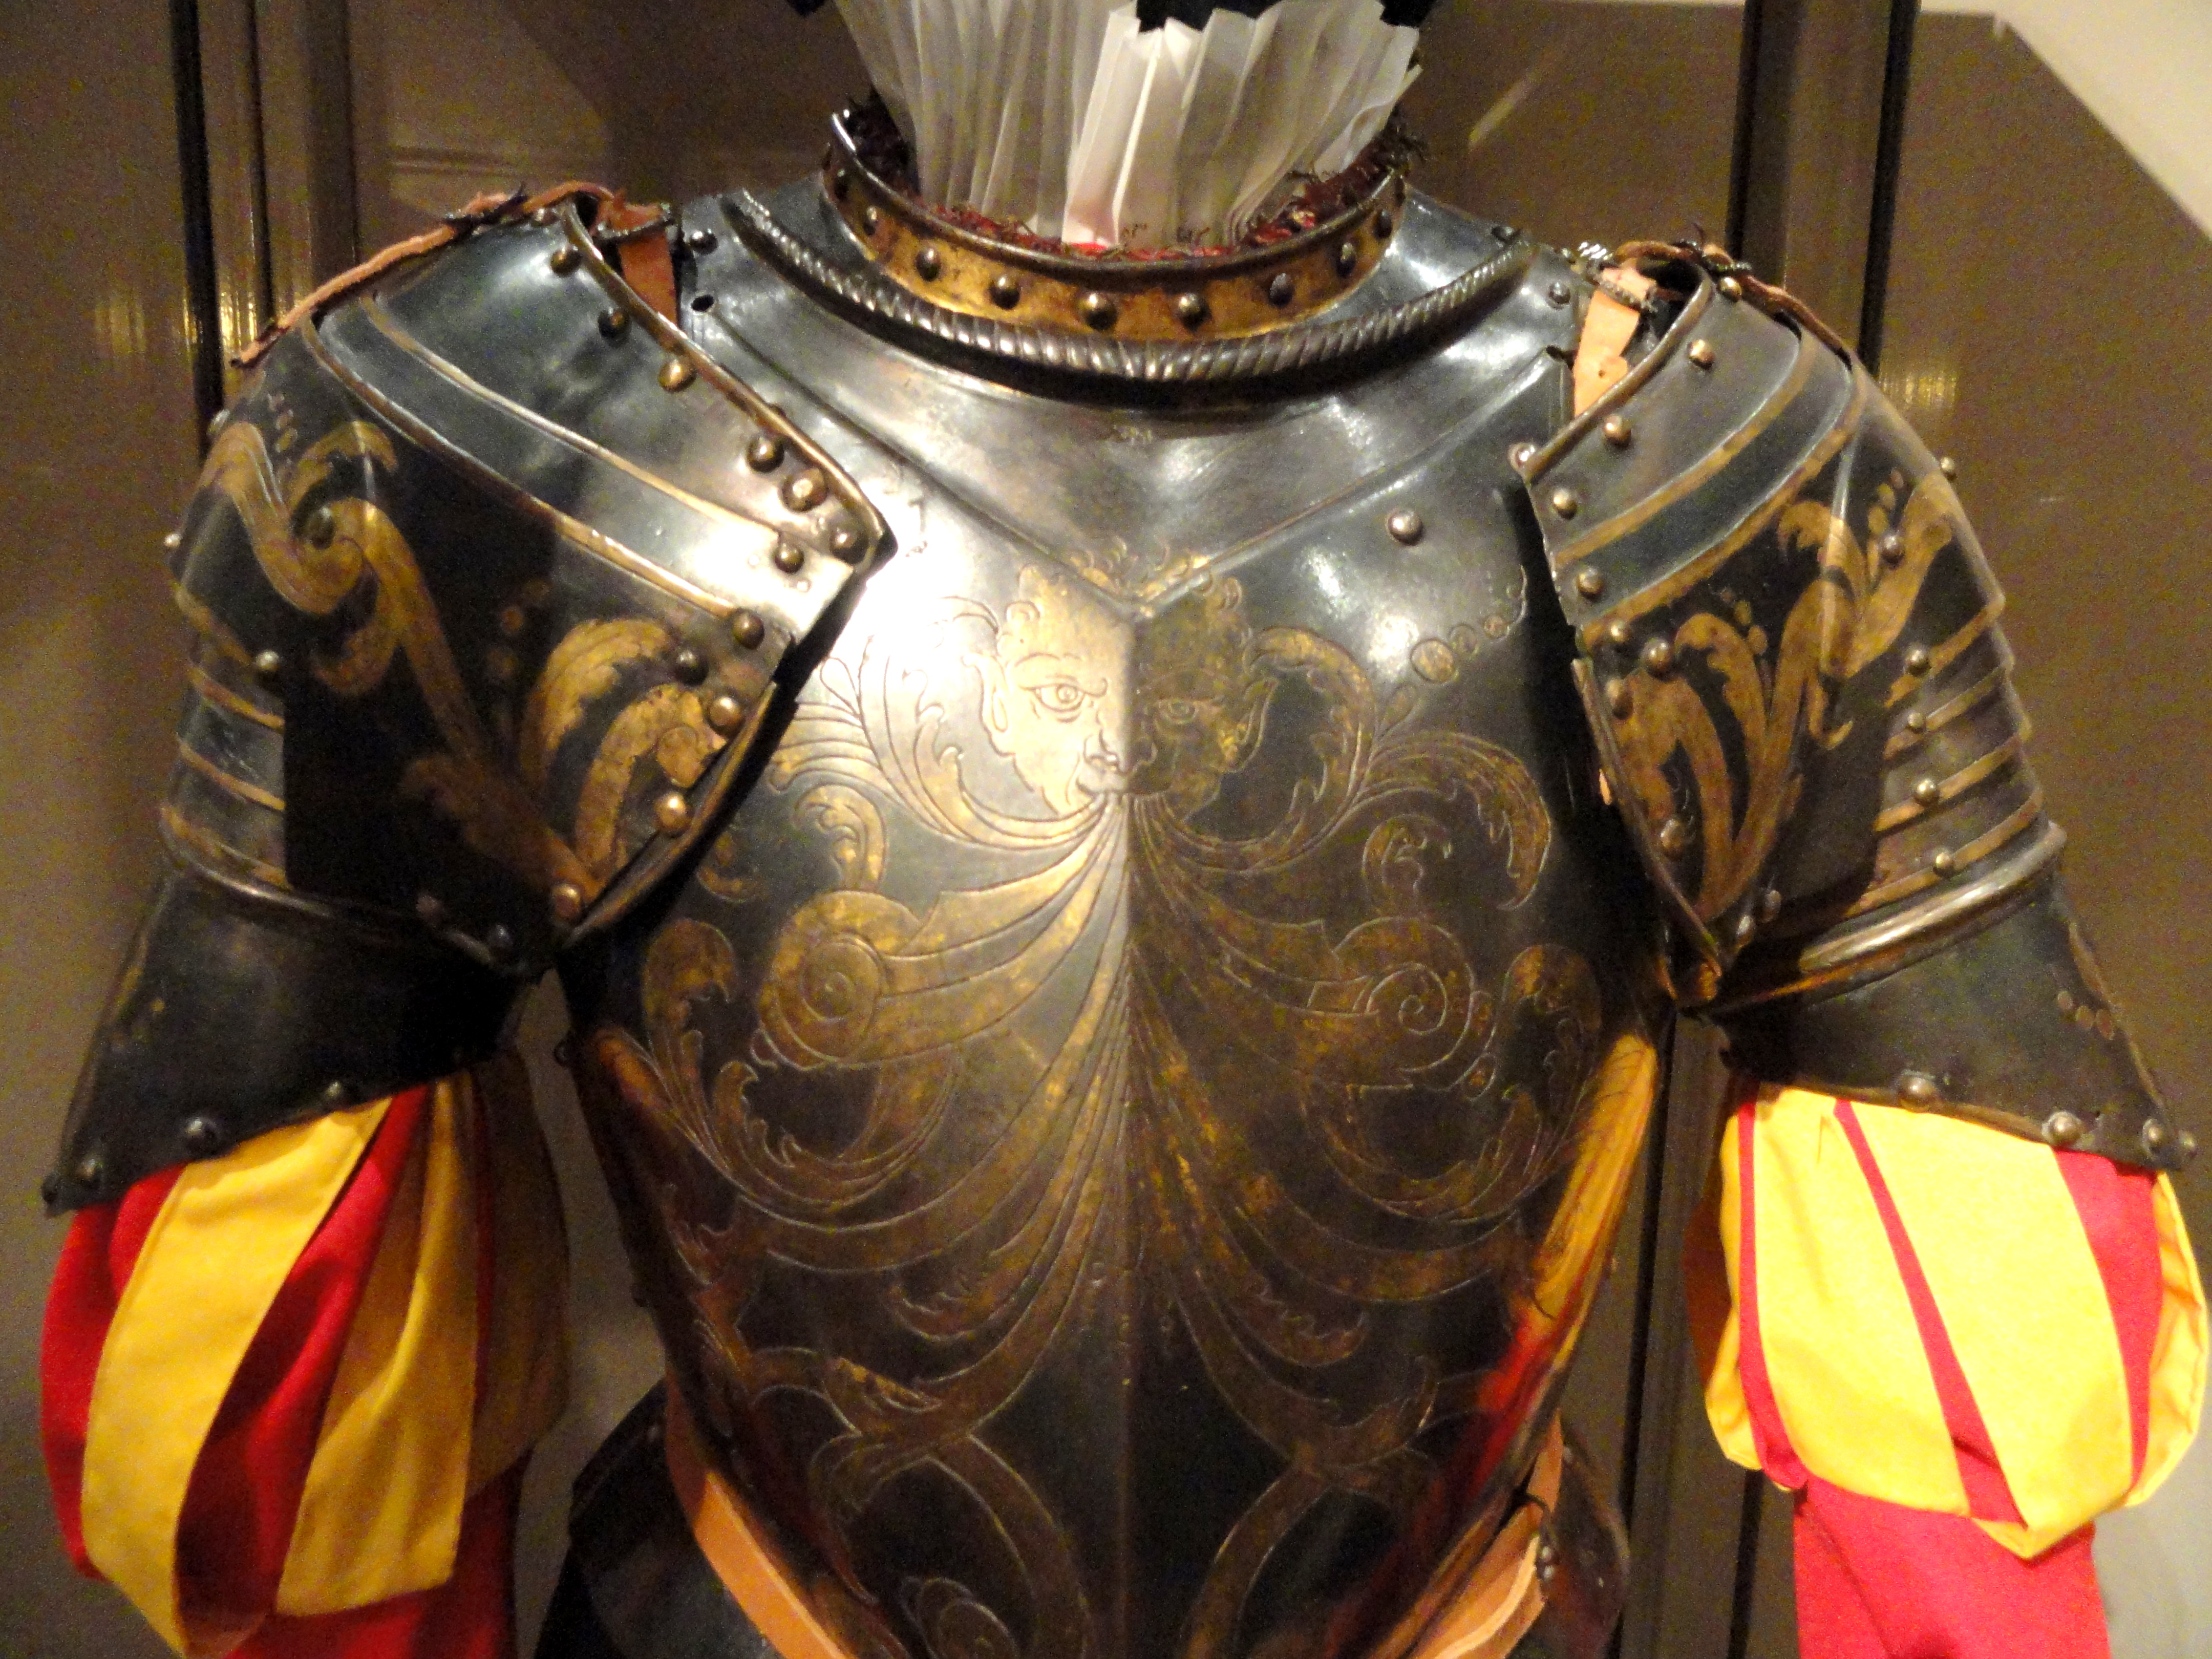 Armour for the Papal Guard of Gregory XIII, circa 1580s, Photo taken in the Higgins Armory Museum, 100 Barber Avenue, Worcester, Massachusetts, on September 24, 2011.